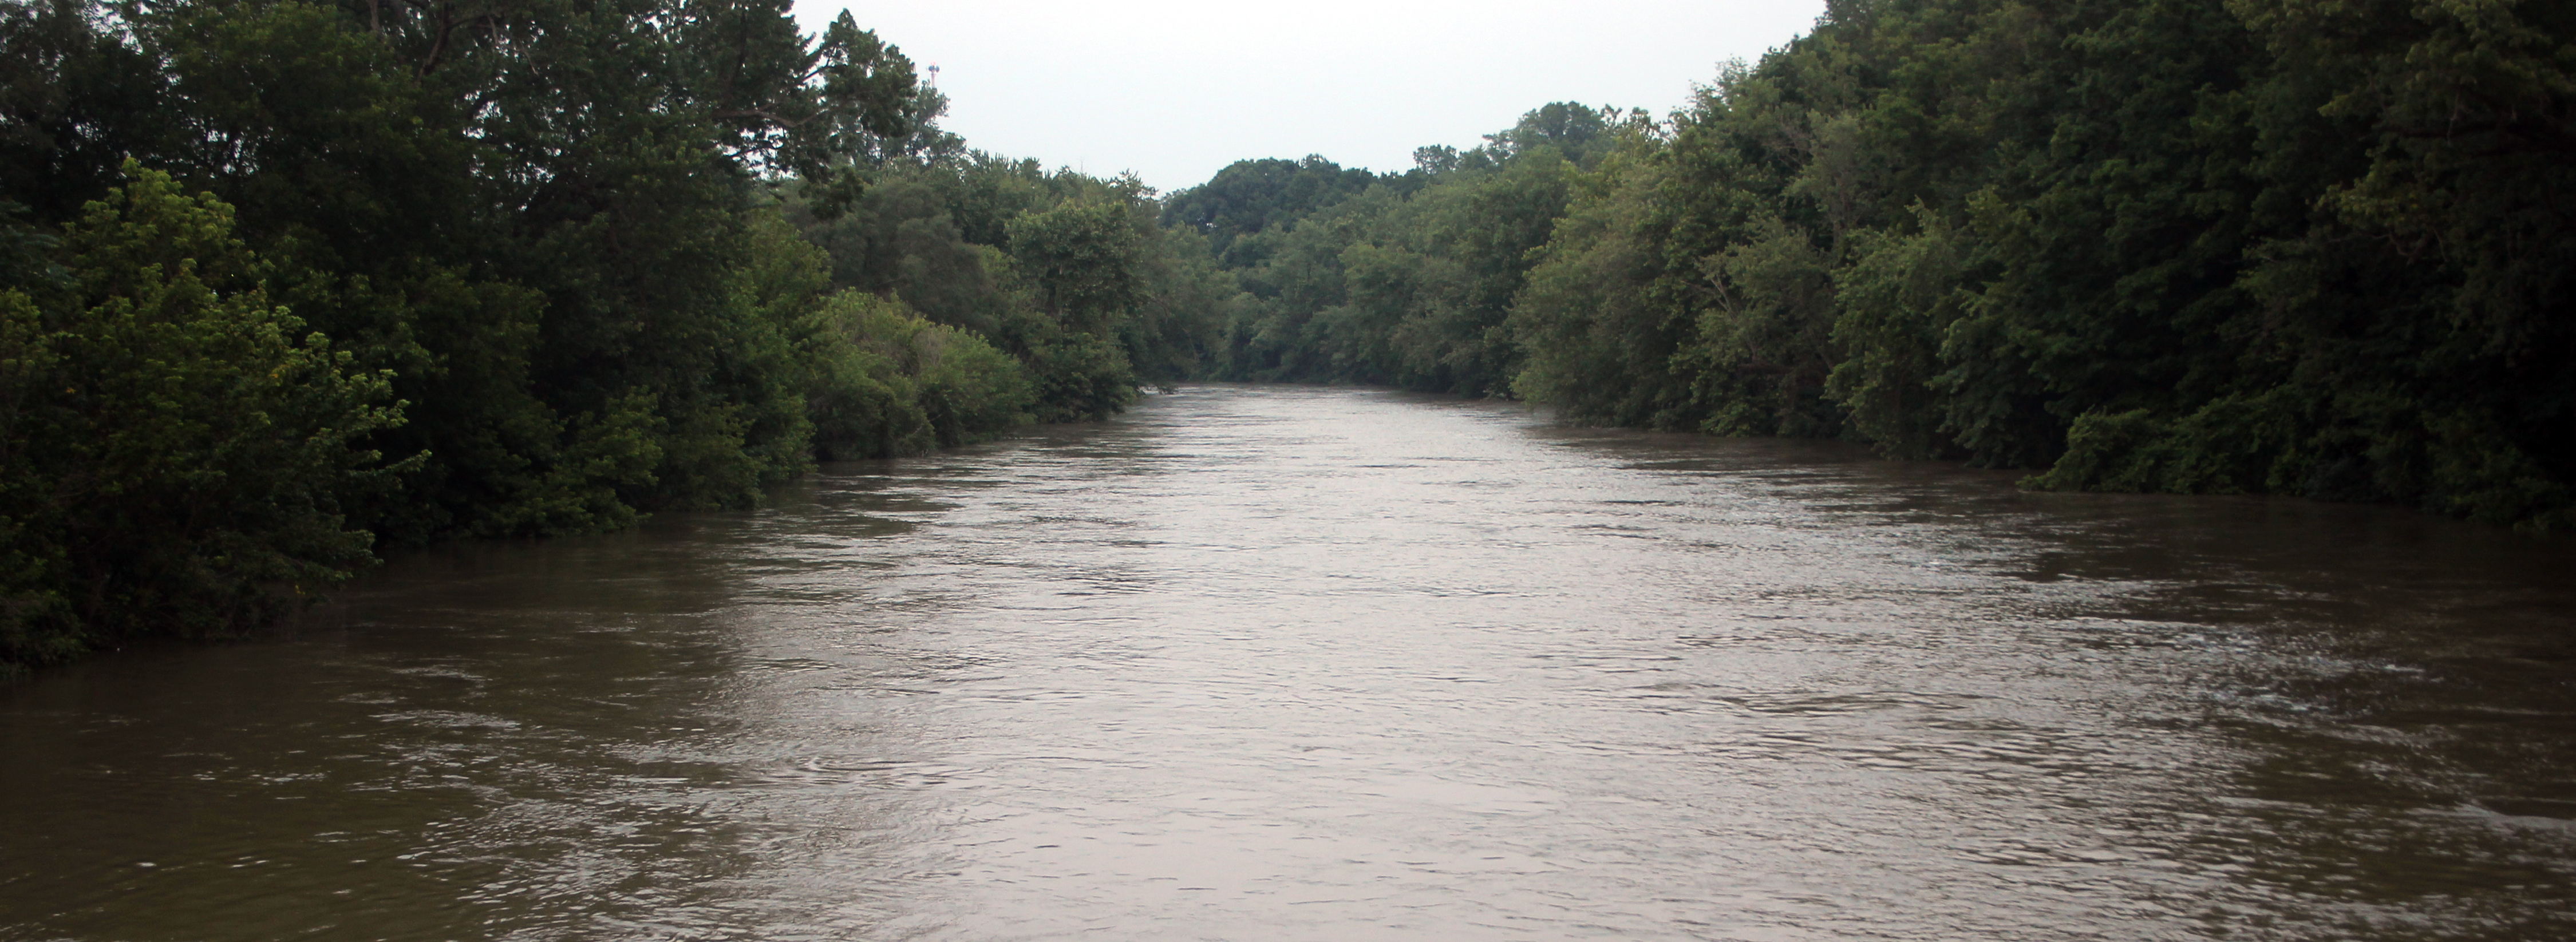 wabash river watershed essay Clean water act violations stem from 2016 spill to wabash river on illinois-indiana border clean water act violations stem from 2016 spill to wabash river papers.